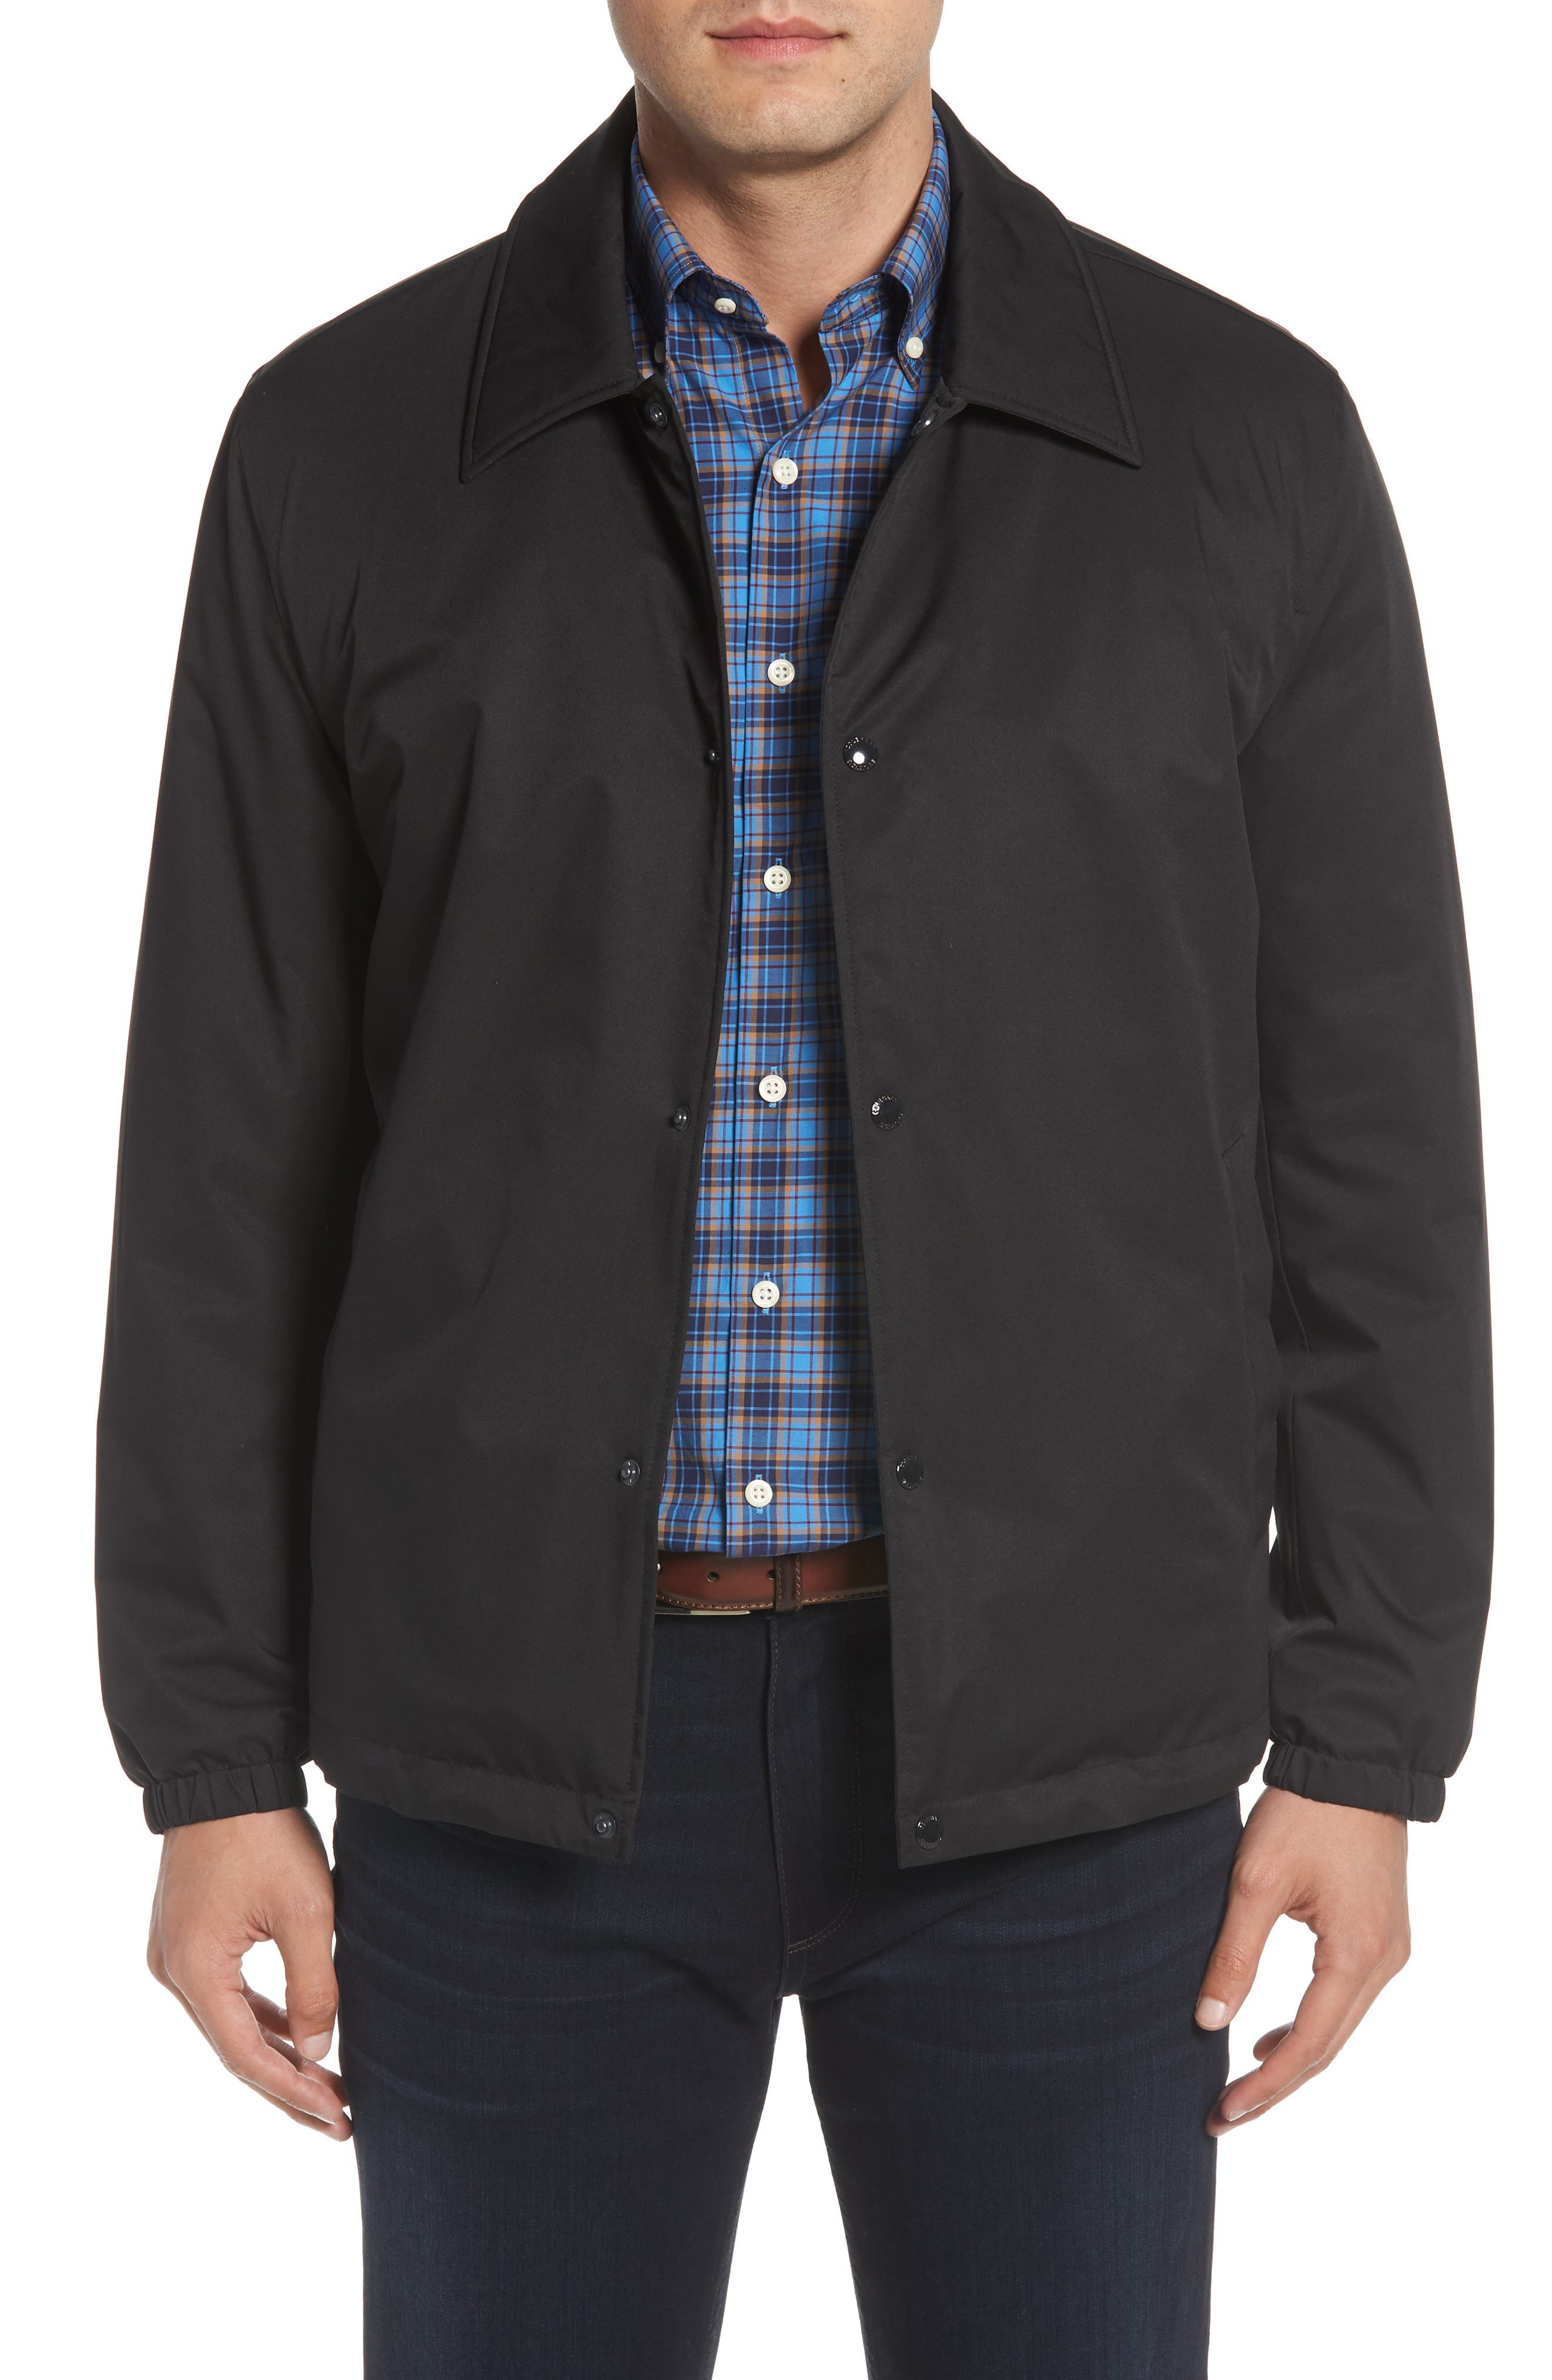 COLE HAAN SIGNATURE,                             Faux Shearling Lined Jacket,                             Main thumbnail 1, color,                             001